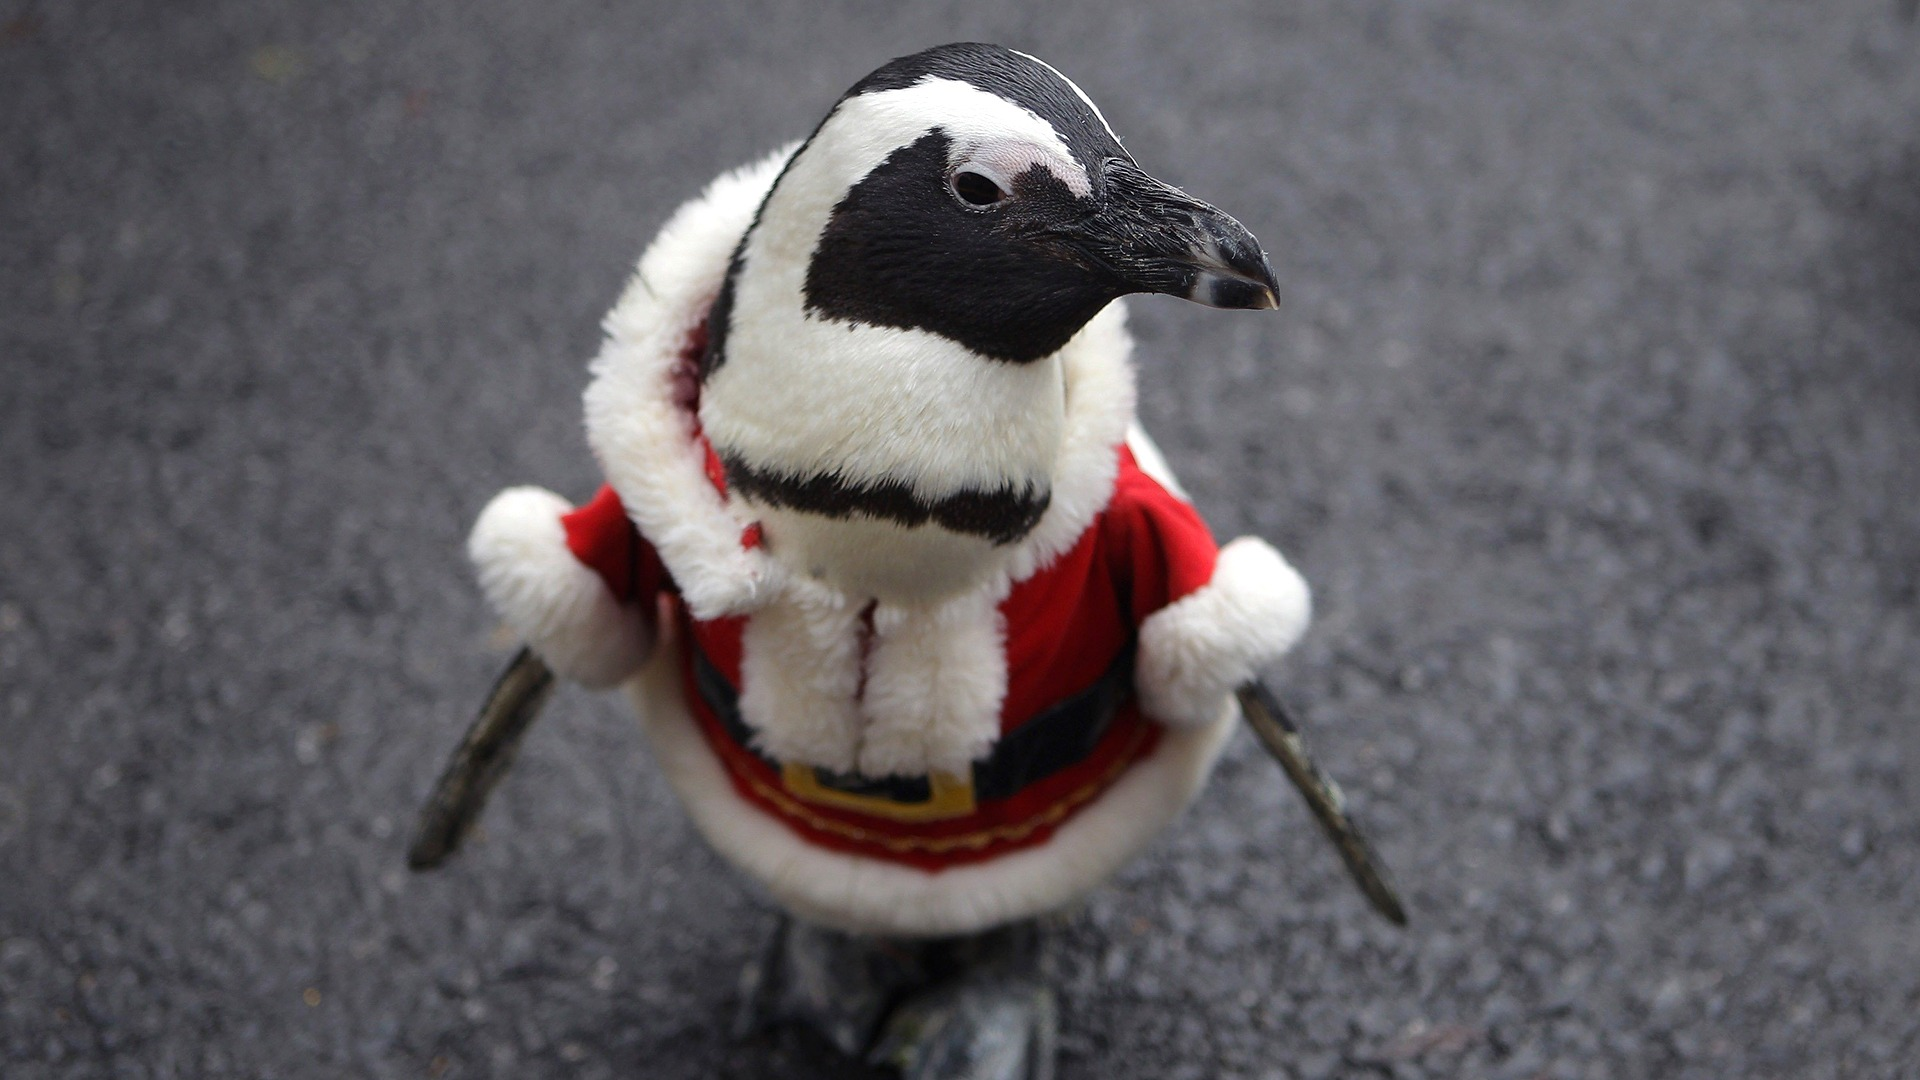 Image: Penguins Dress As Santa Claus At Everland